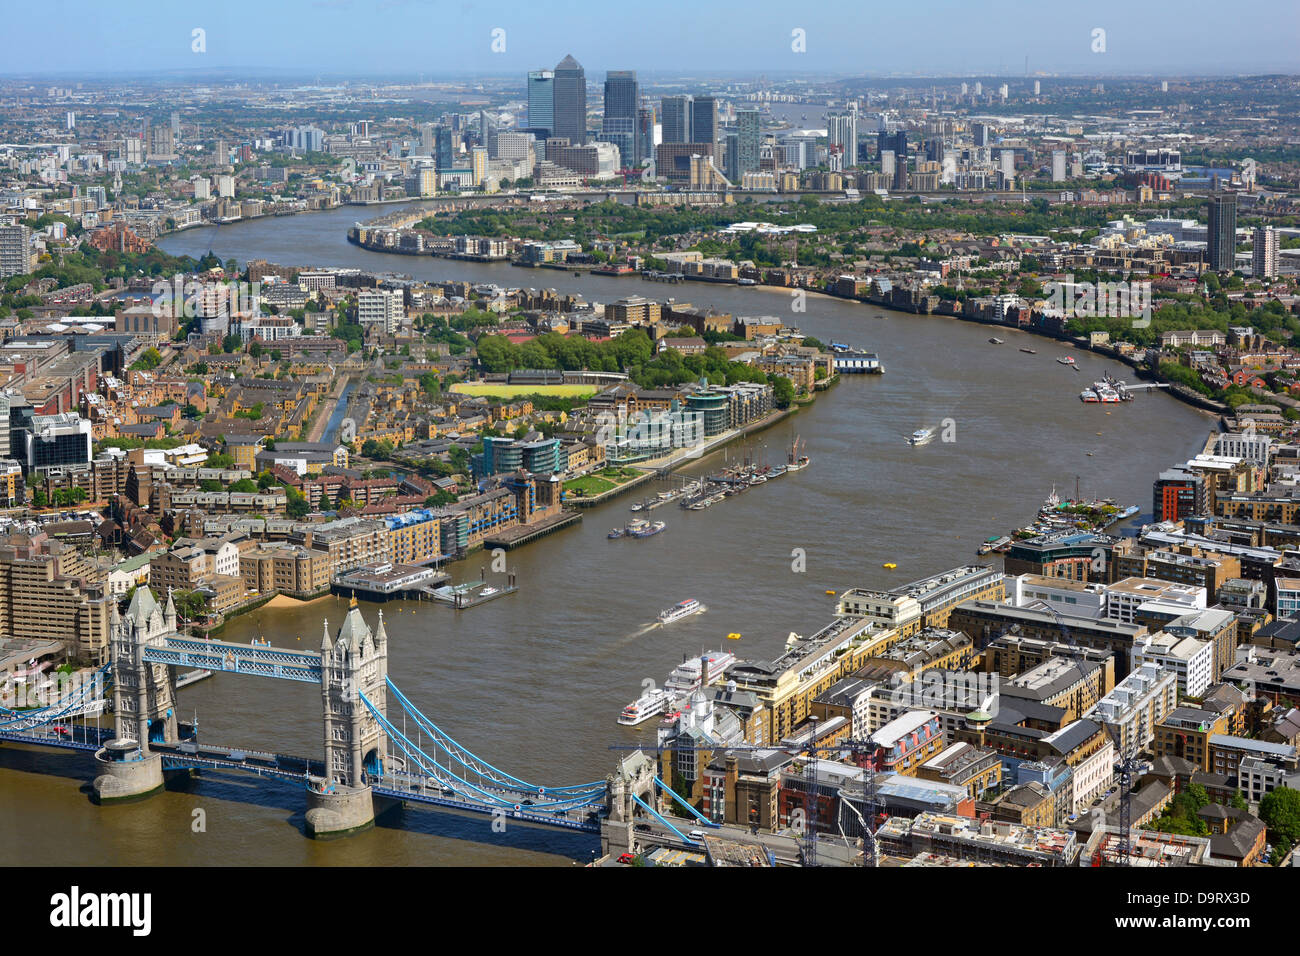 Aerial view of the River Thames from Tower Bridge towards Canary Wharf skyline - Stock Image